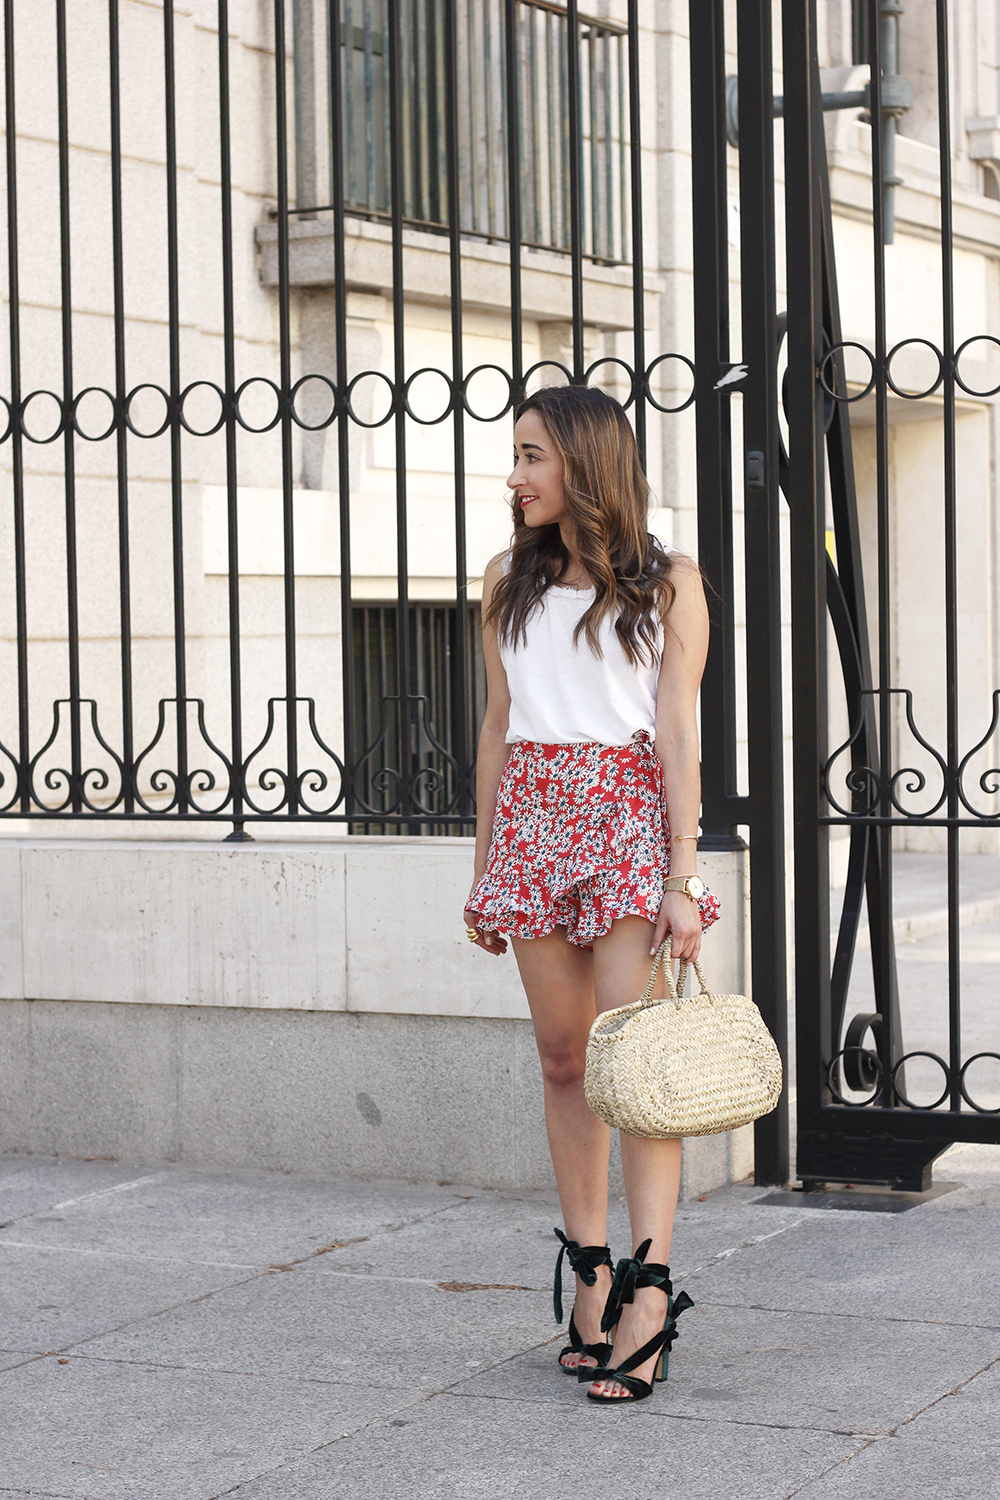 Velvet sandals floral skirt summer outfit style fashion07